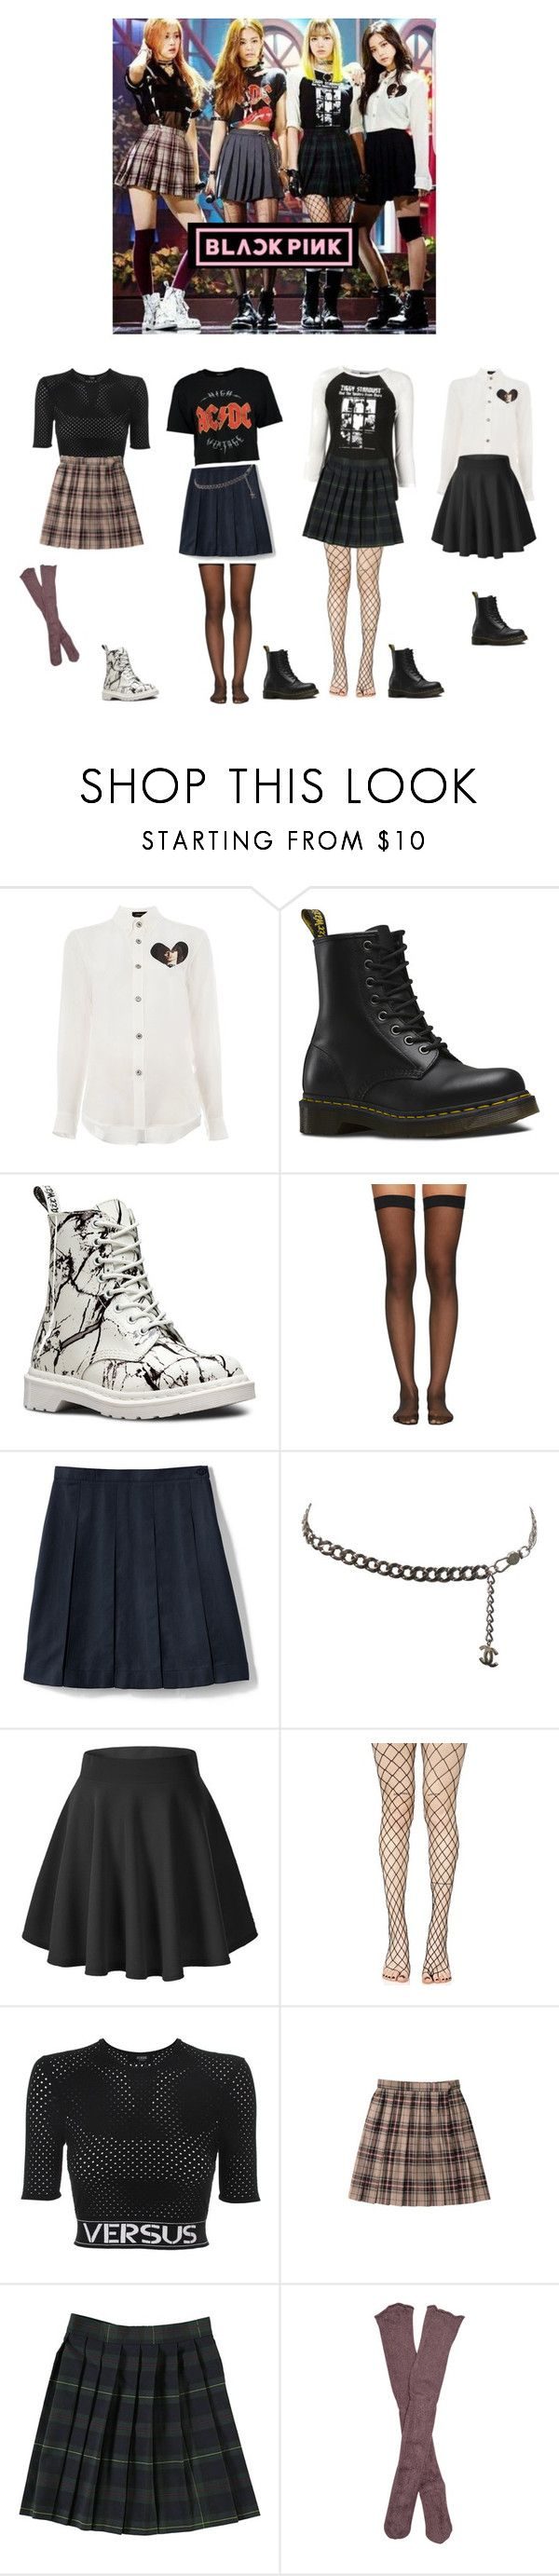 """""""Blackpink - boombayah"""" by mochichimchim ❤ liked on Polyvore featuring Undercover, Dr. Martens, Wolford, Lands' End, Chanel, Leg Avenue, Versus, French Toast and Free People"""